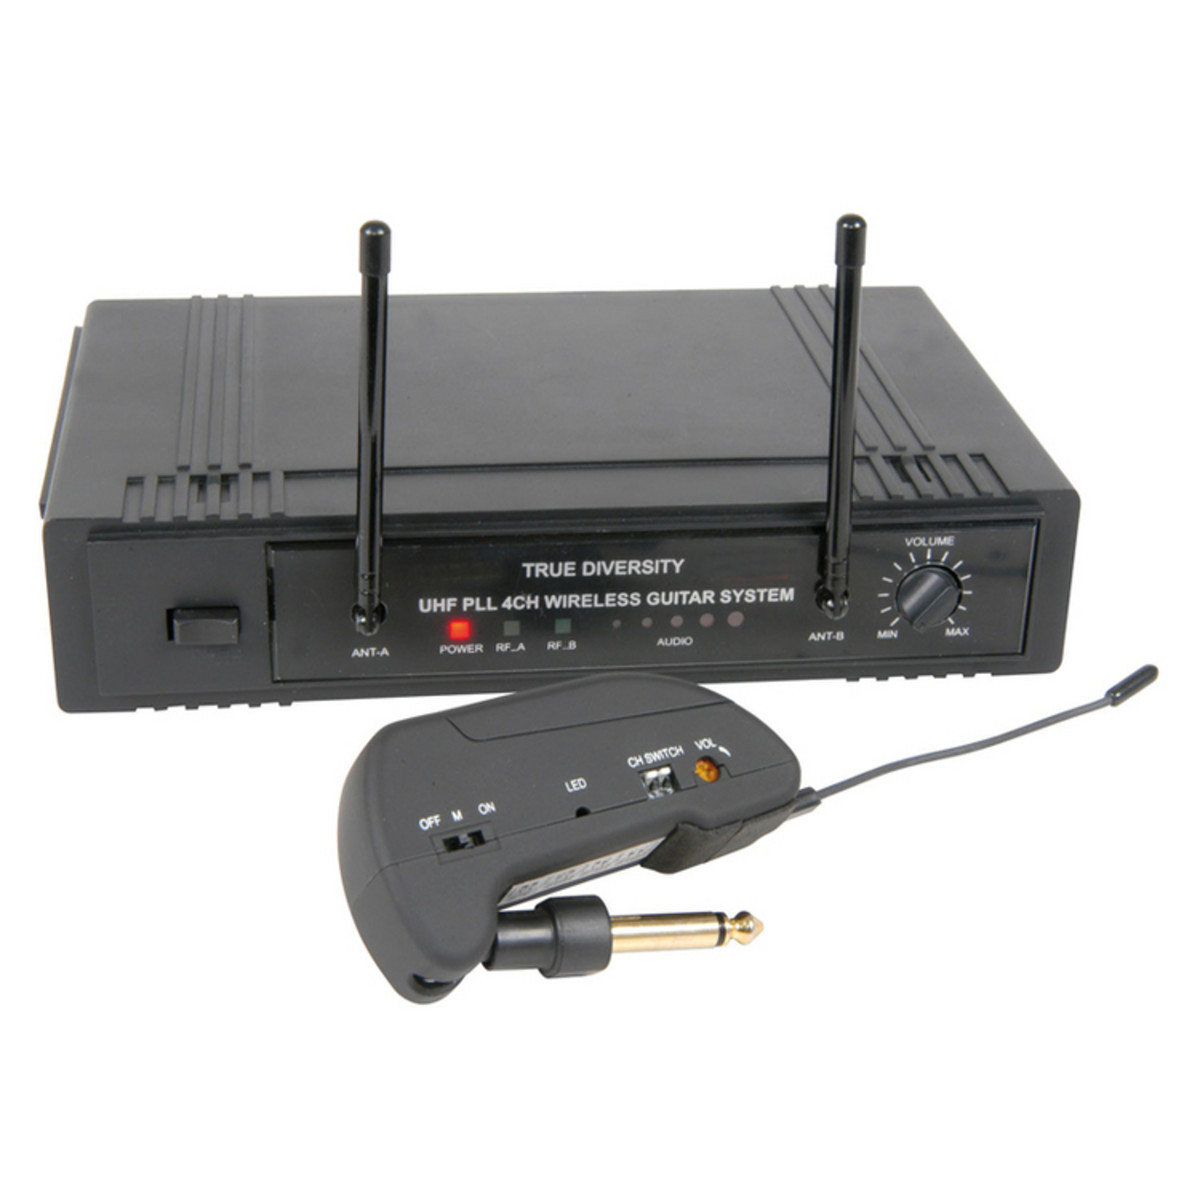 qtx 4 channel true diversity uhf wireless guitar system nearly new at gear4music. Black Bedroom Furniture Sets. Home Design Ideas